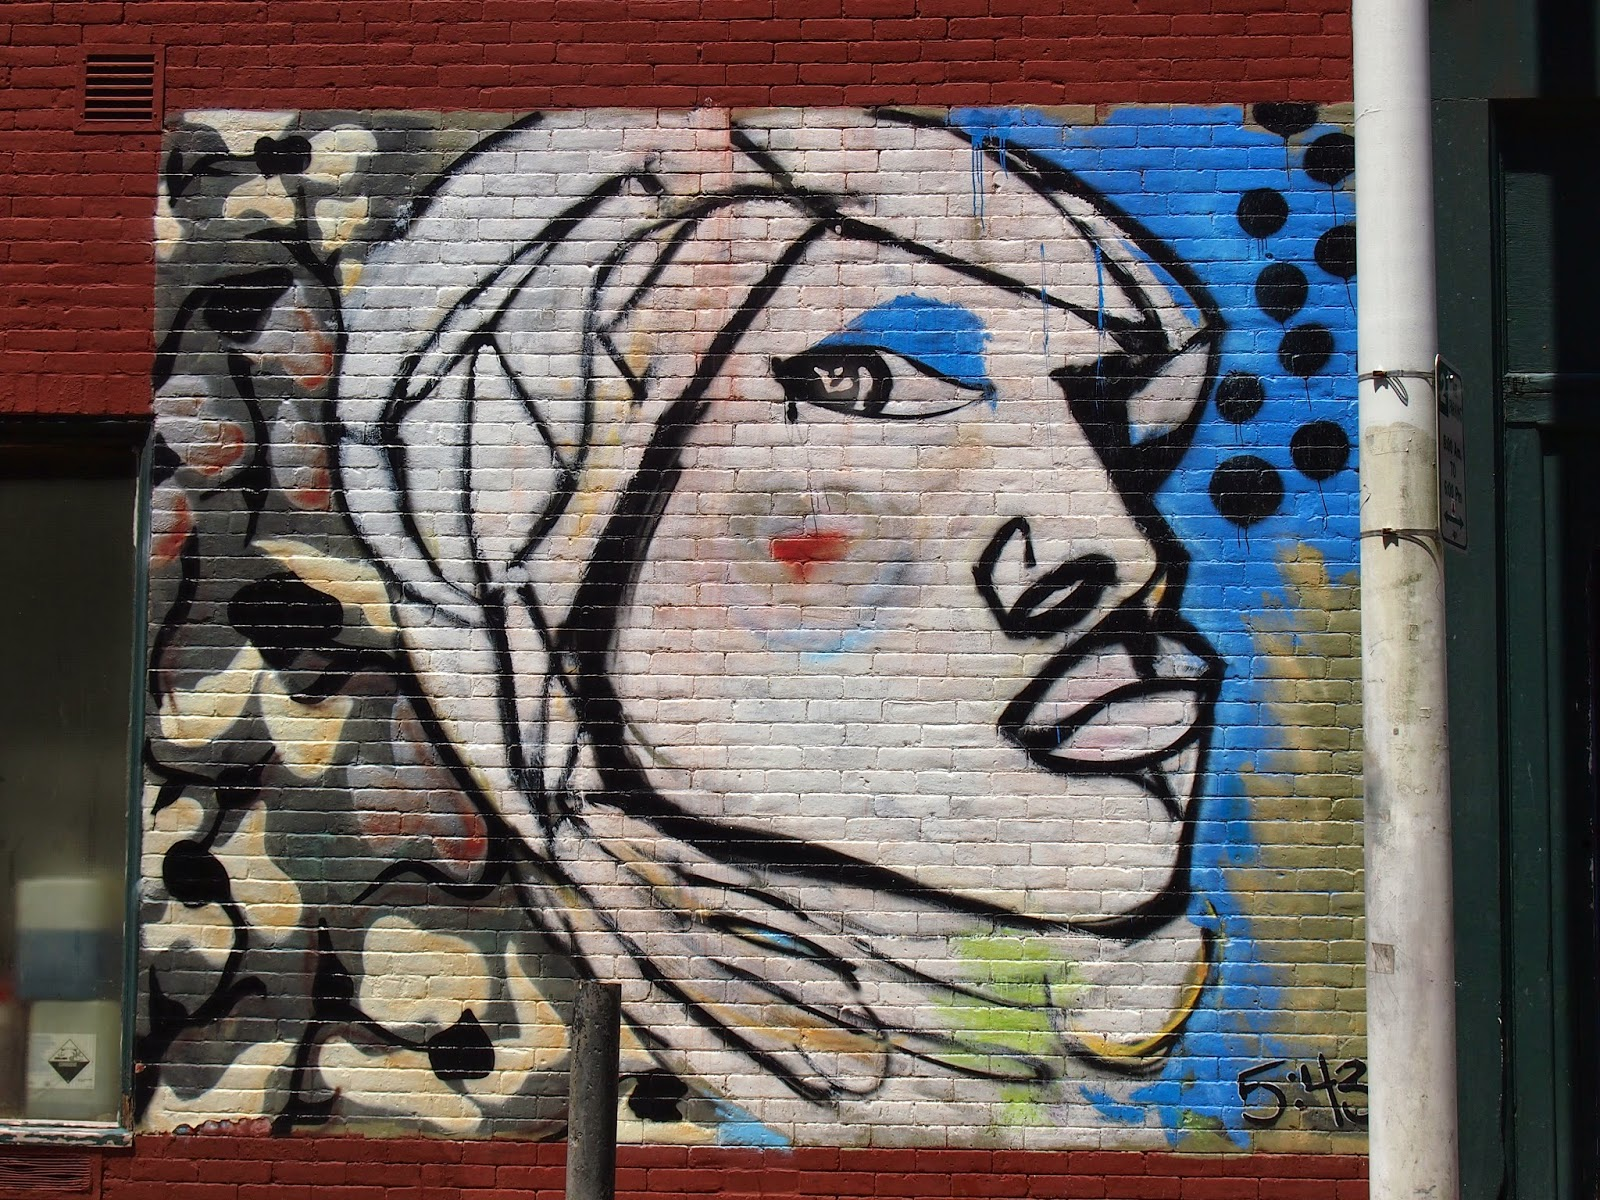 a painting on brick of a woman's face